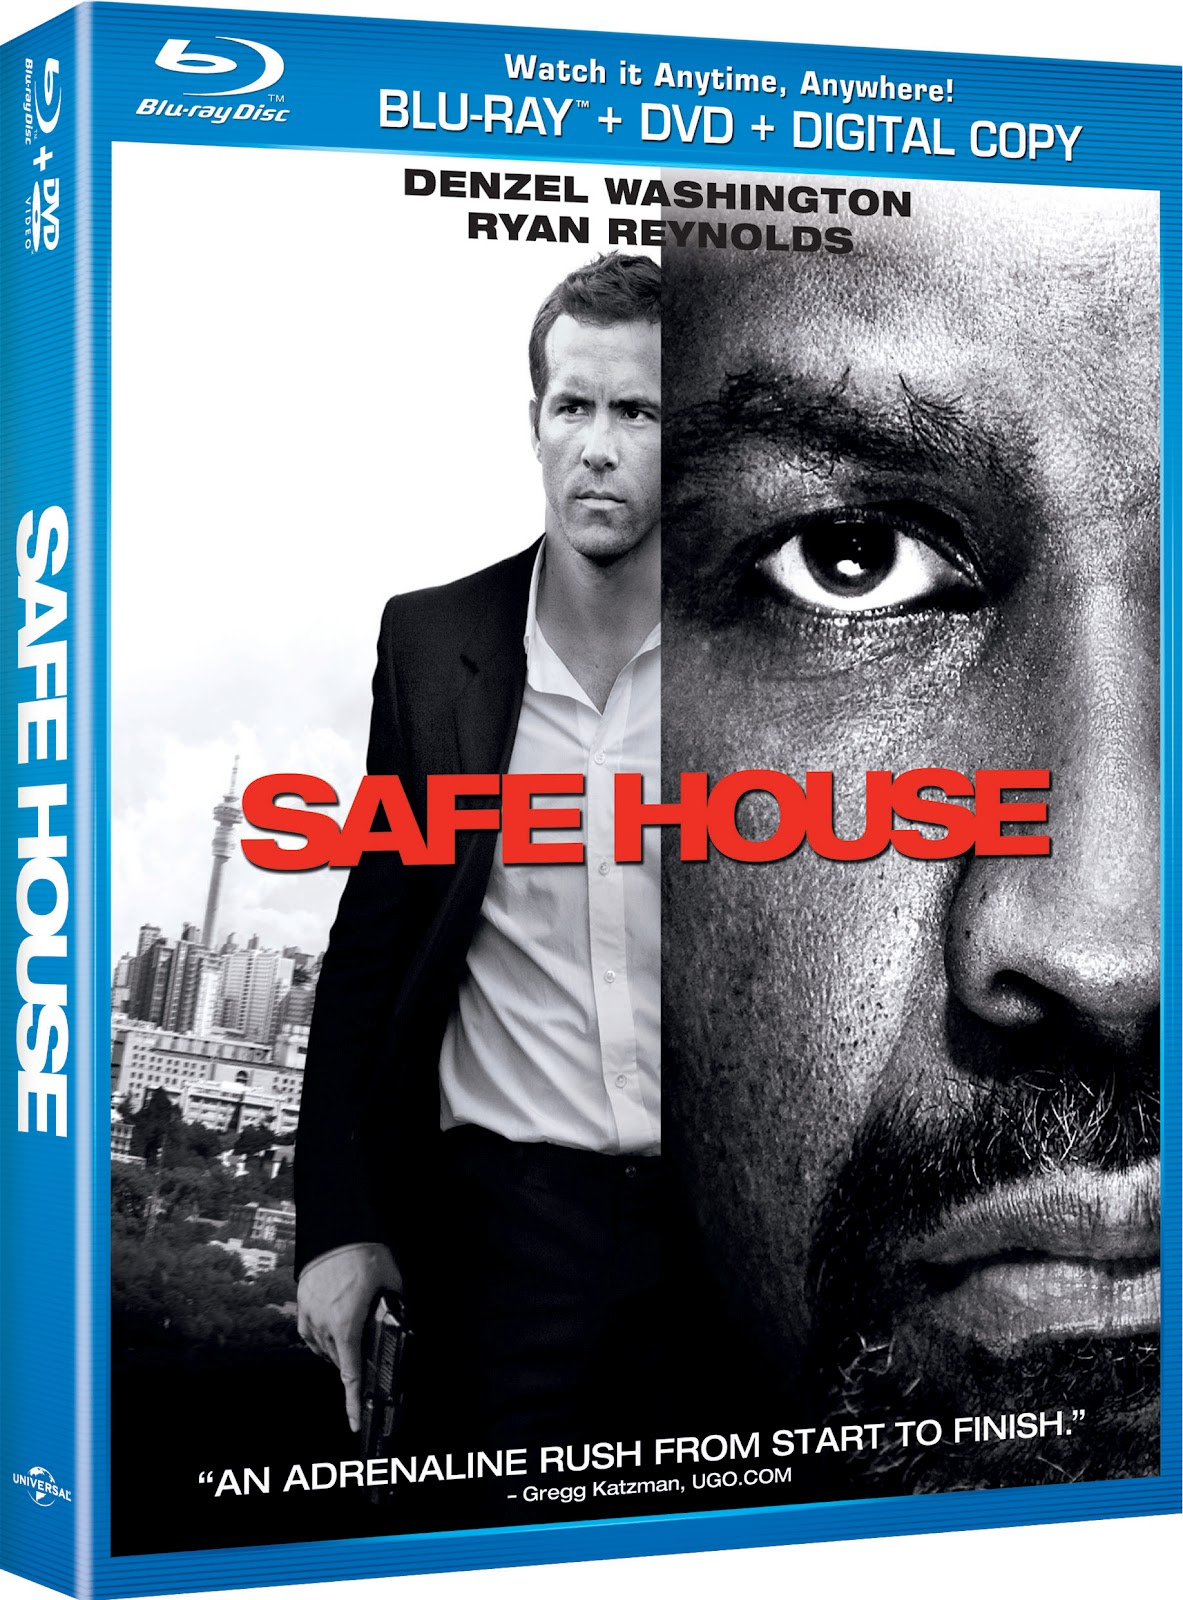 SAFE HOUSE Blu-ray and DVD Release Date «